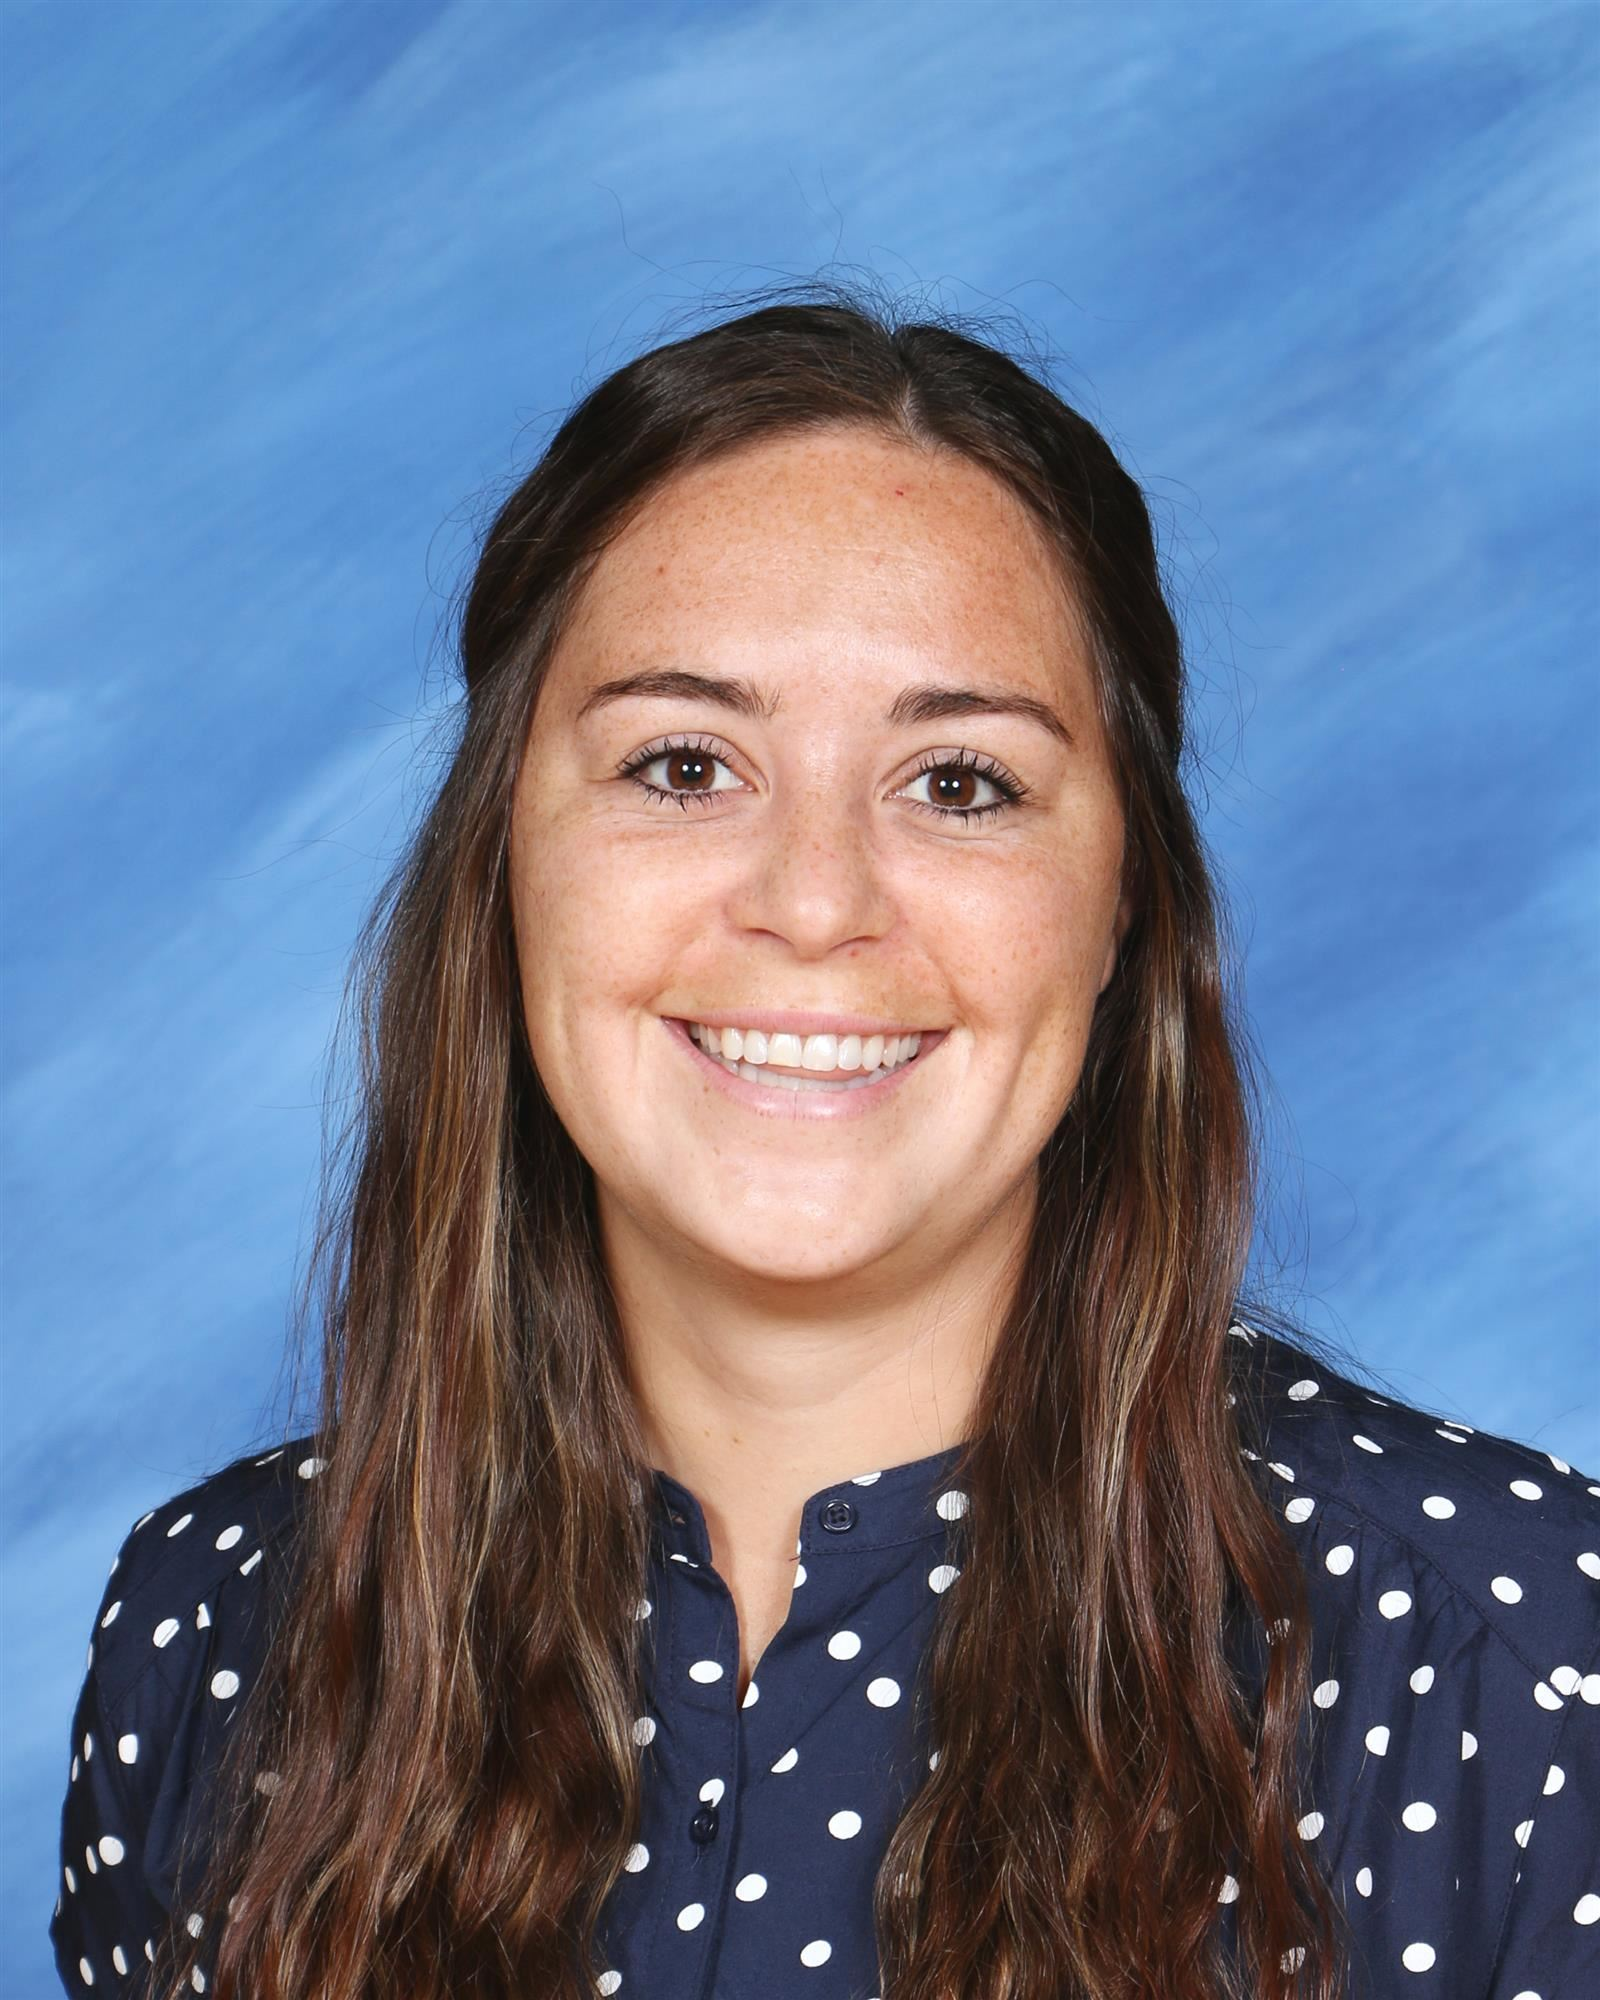 Drew Camps-Wofford Named WHS's Kati Fischer Teacher of the Year